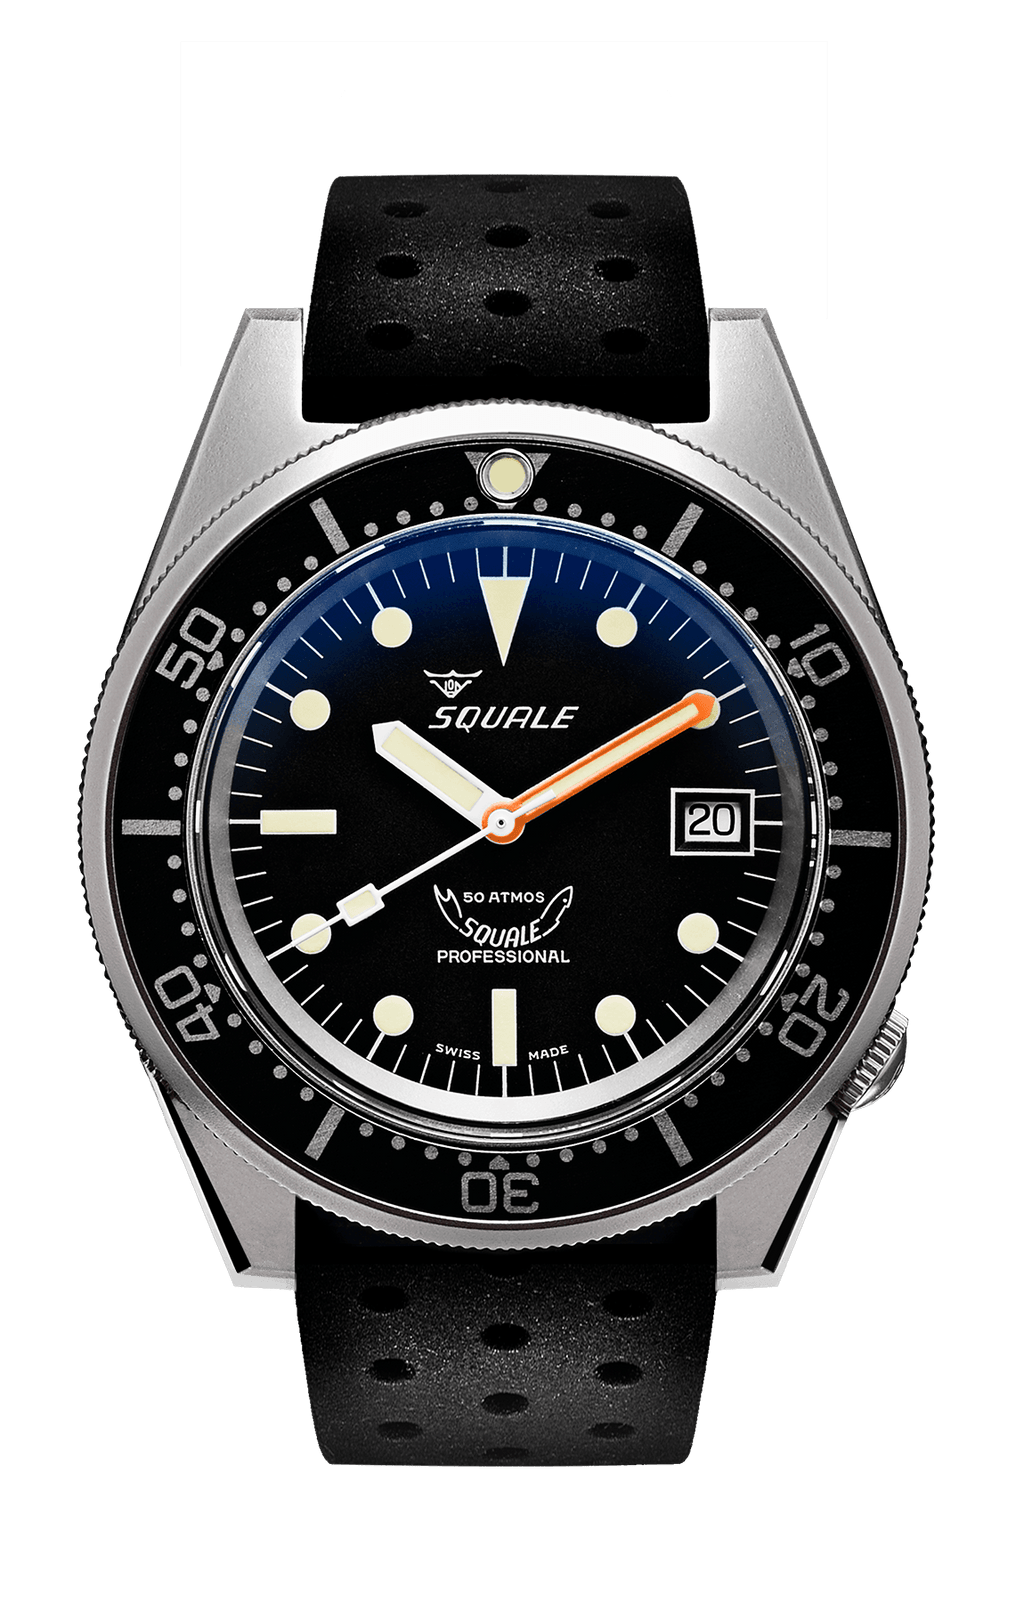 Squale 1521 50 ATMOS Sort Matt - Watchus